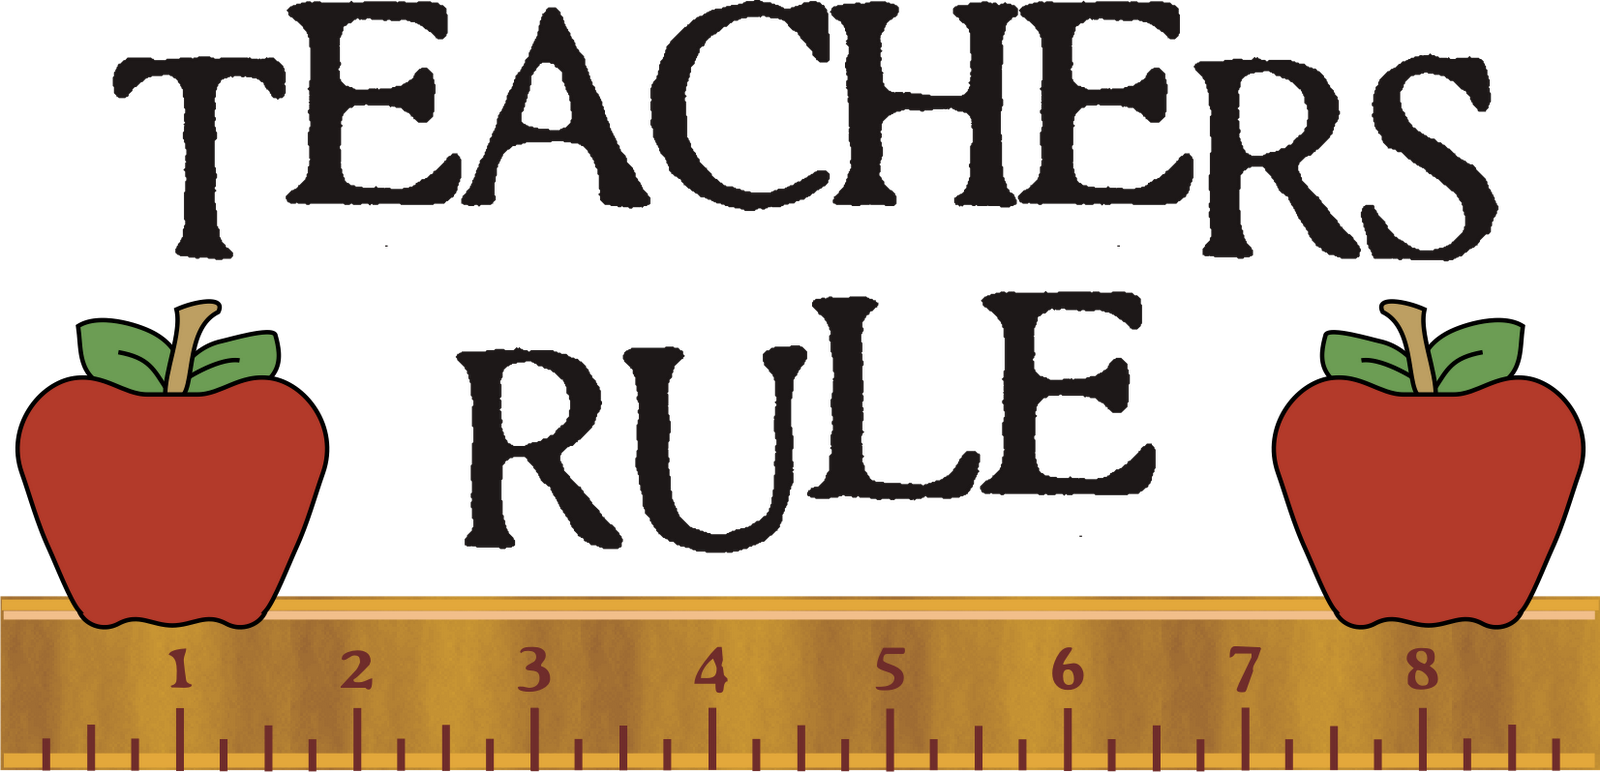 July teaching maths with. Clipart ruler education